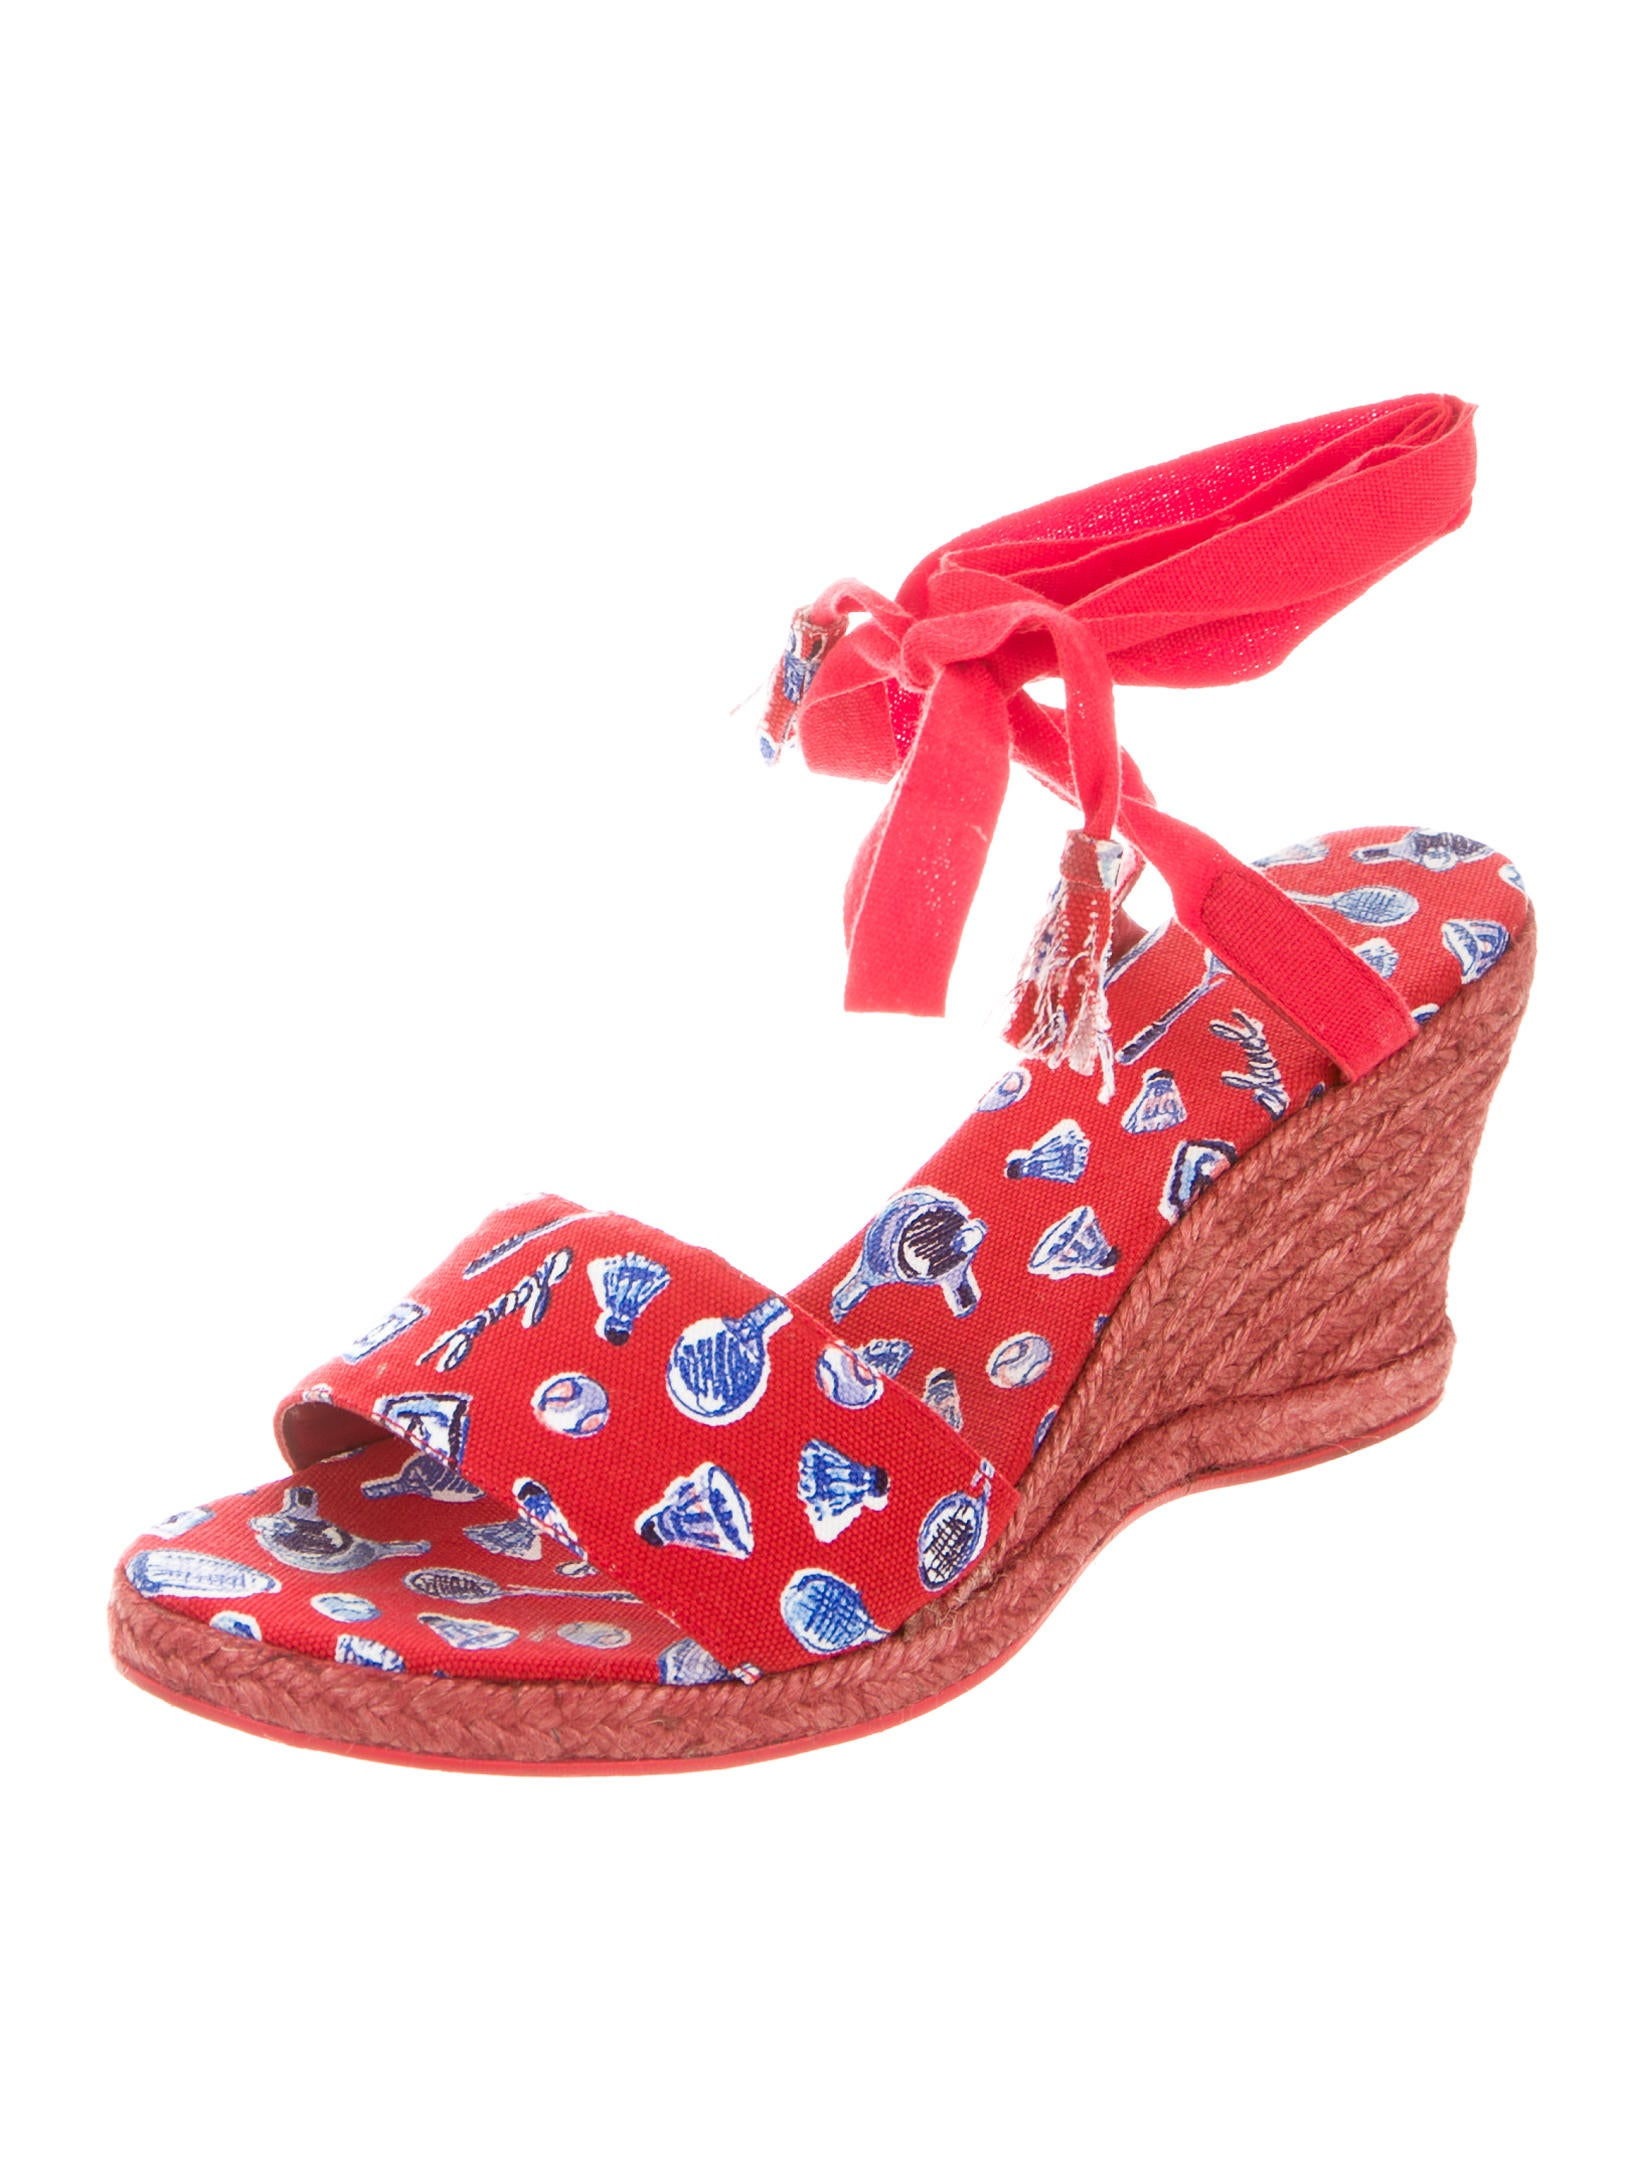 chanel canvas espadrille wedges shoes cha130657 the